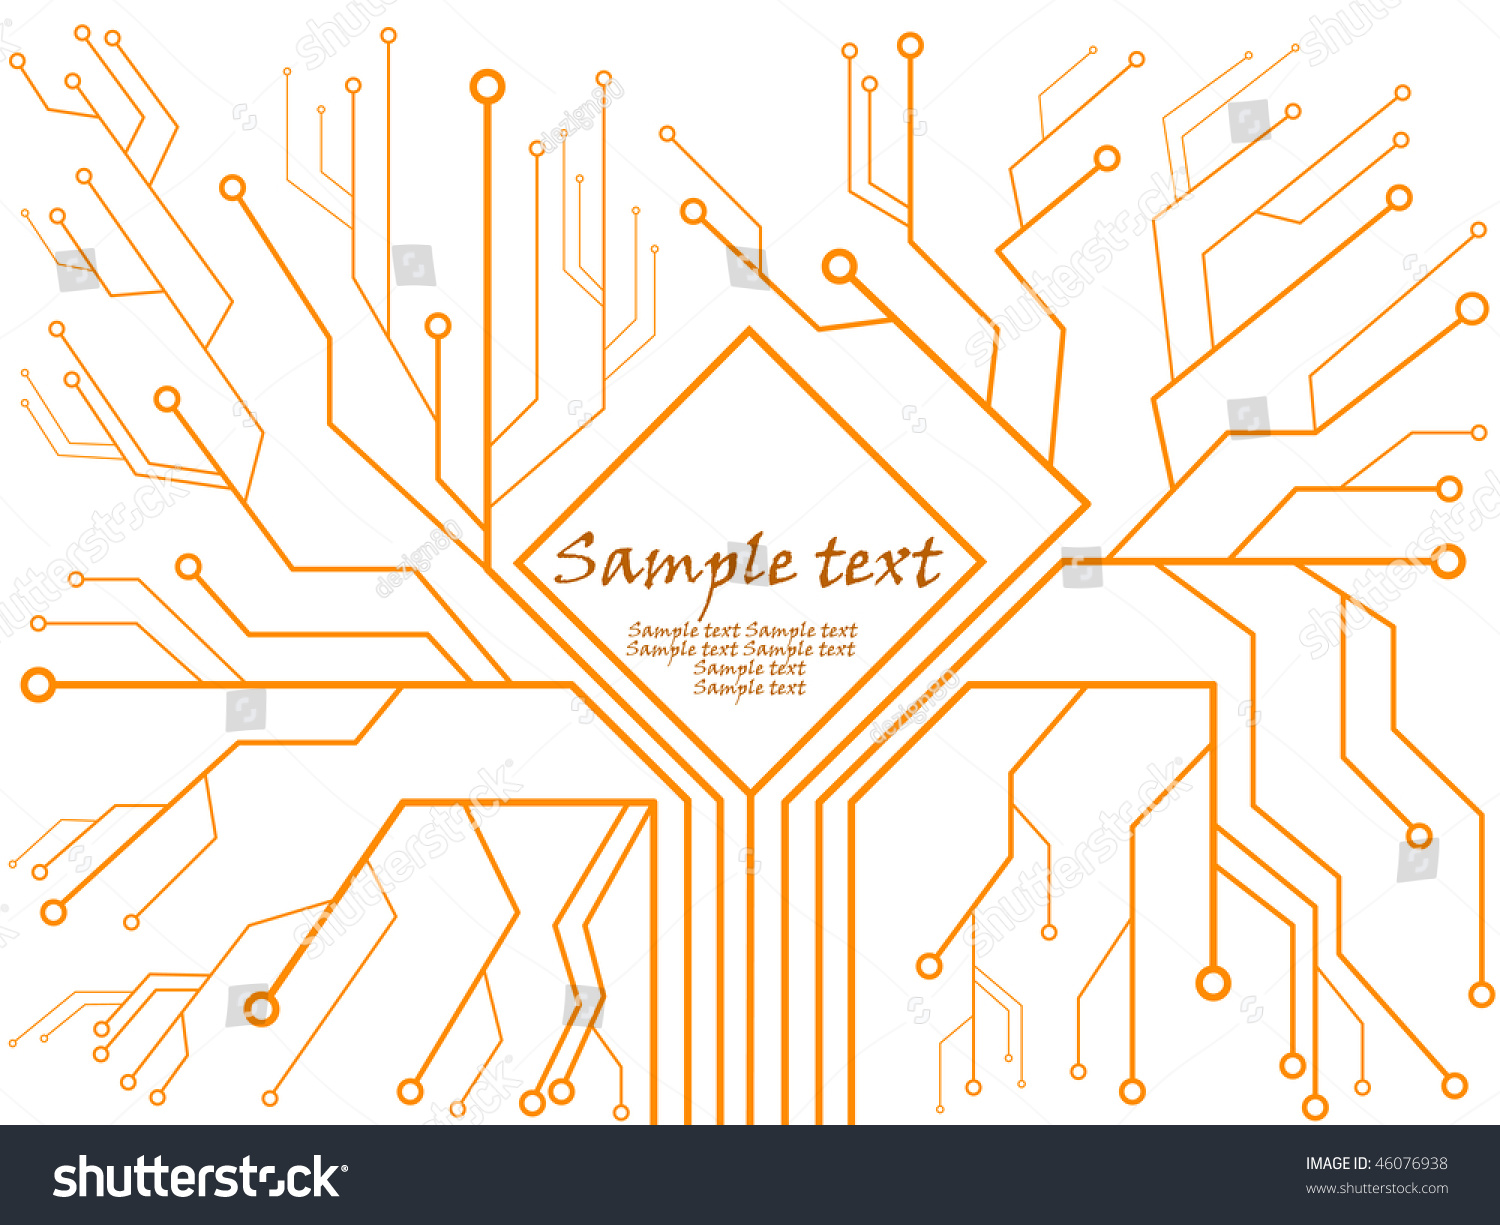 hight resolution of circuit board text vector circuit board circuit board vector sample circuit diagram multisim sample circuit jeep